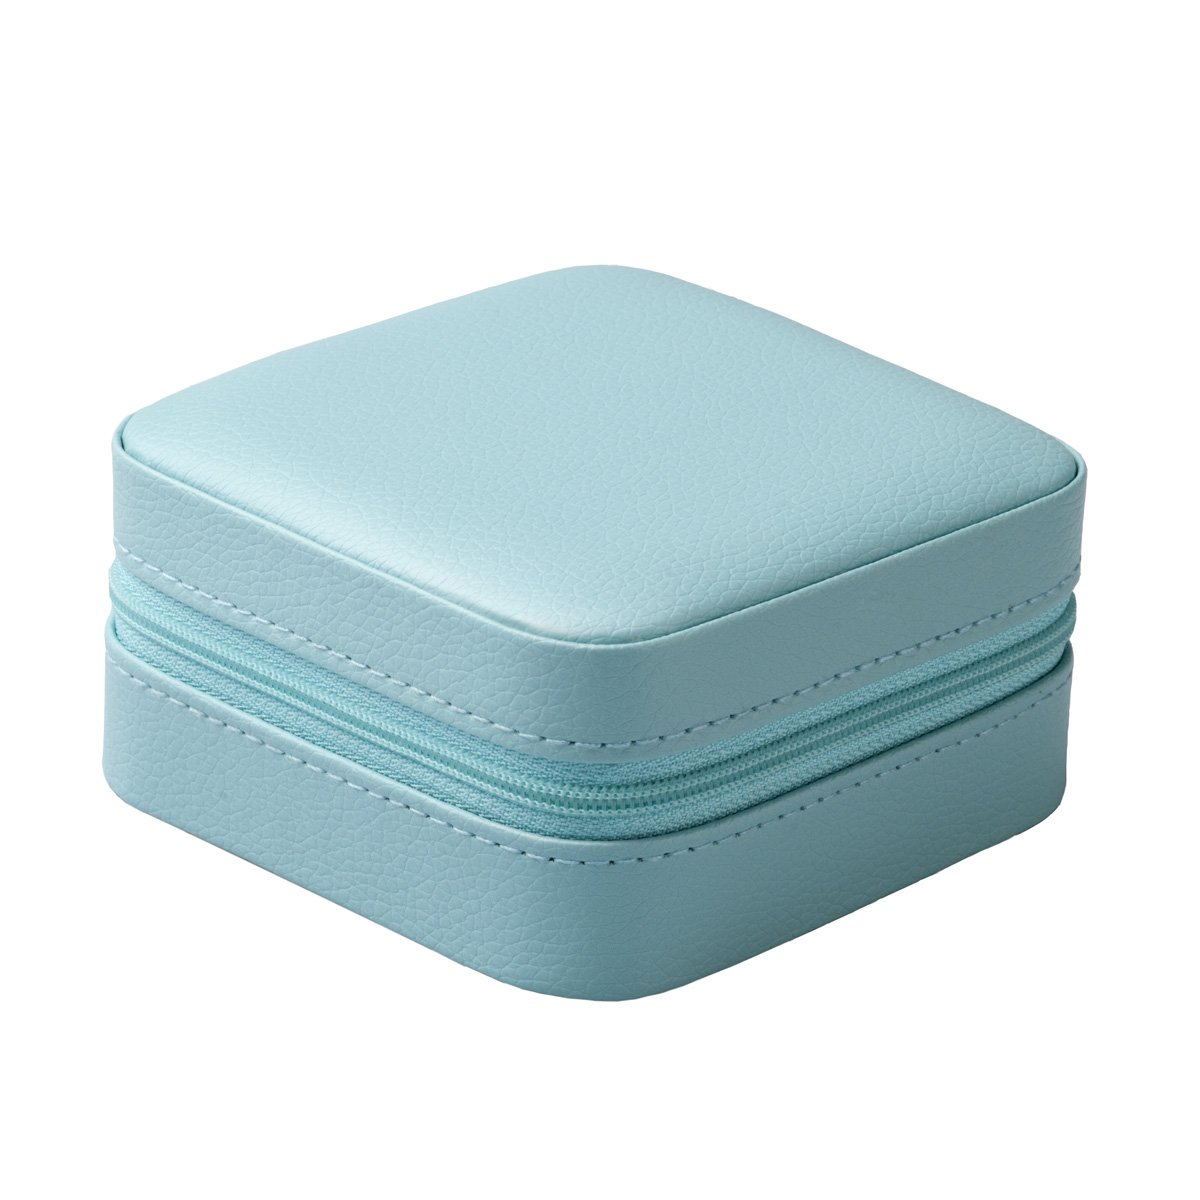 Vlando Small Faux Leather Travel Jewelry Box Organizer Display Storage Case for Rings Earrings Necklace (Blue) by Vlando (Image #2)